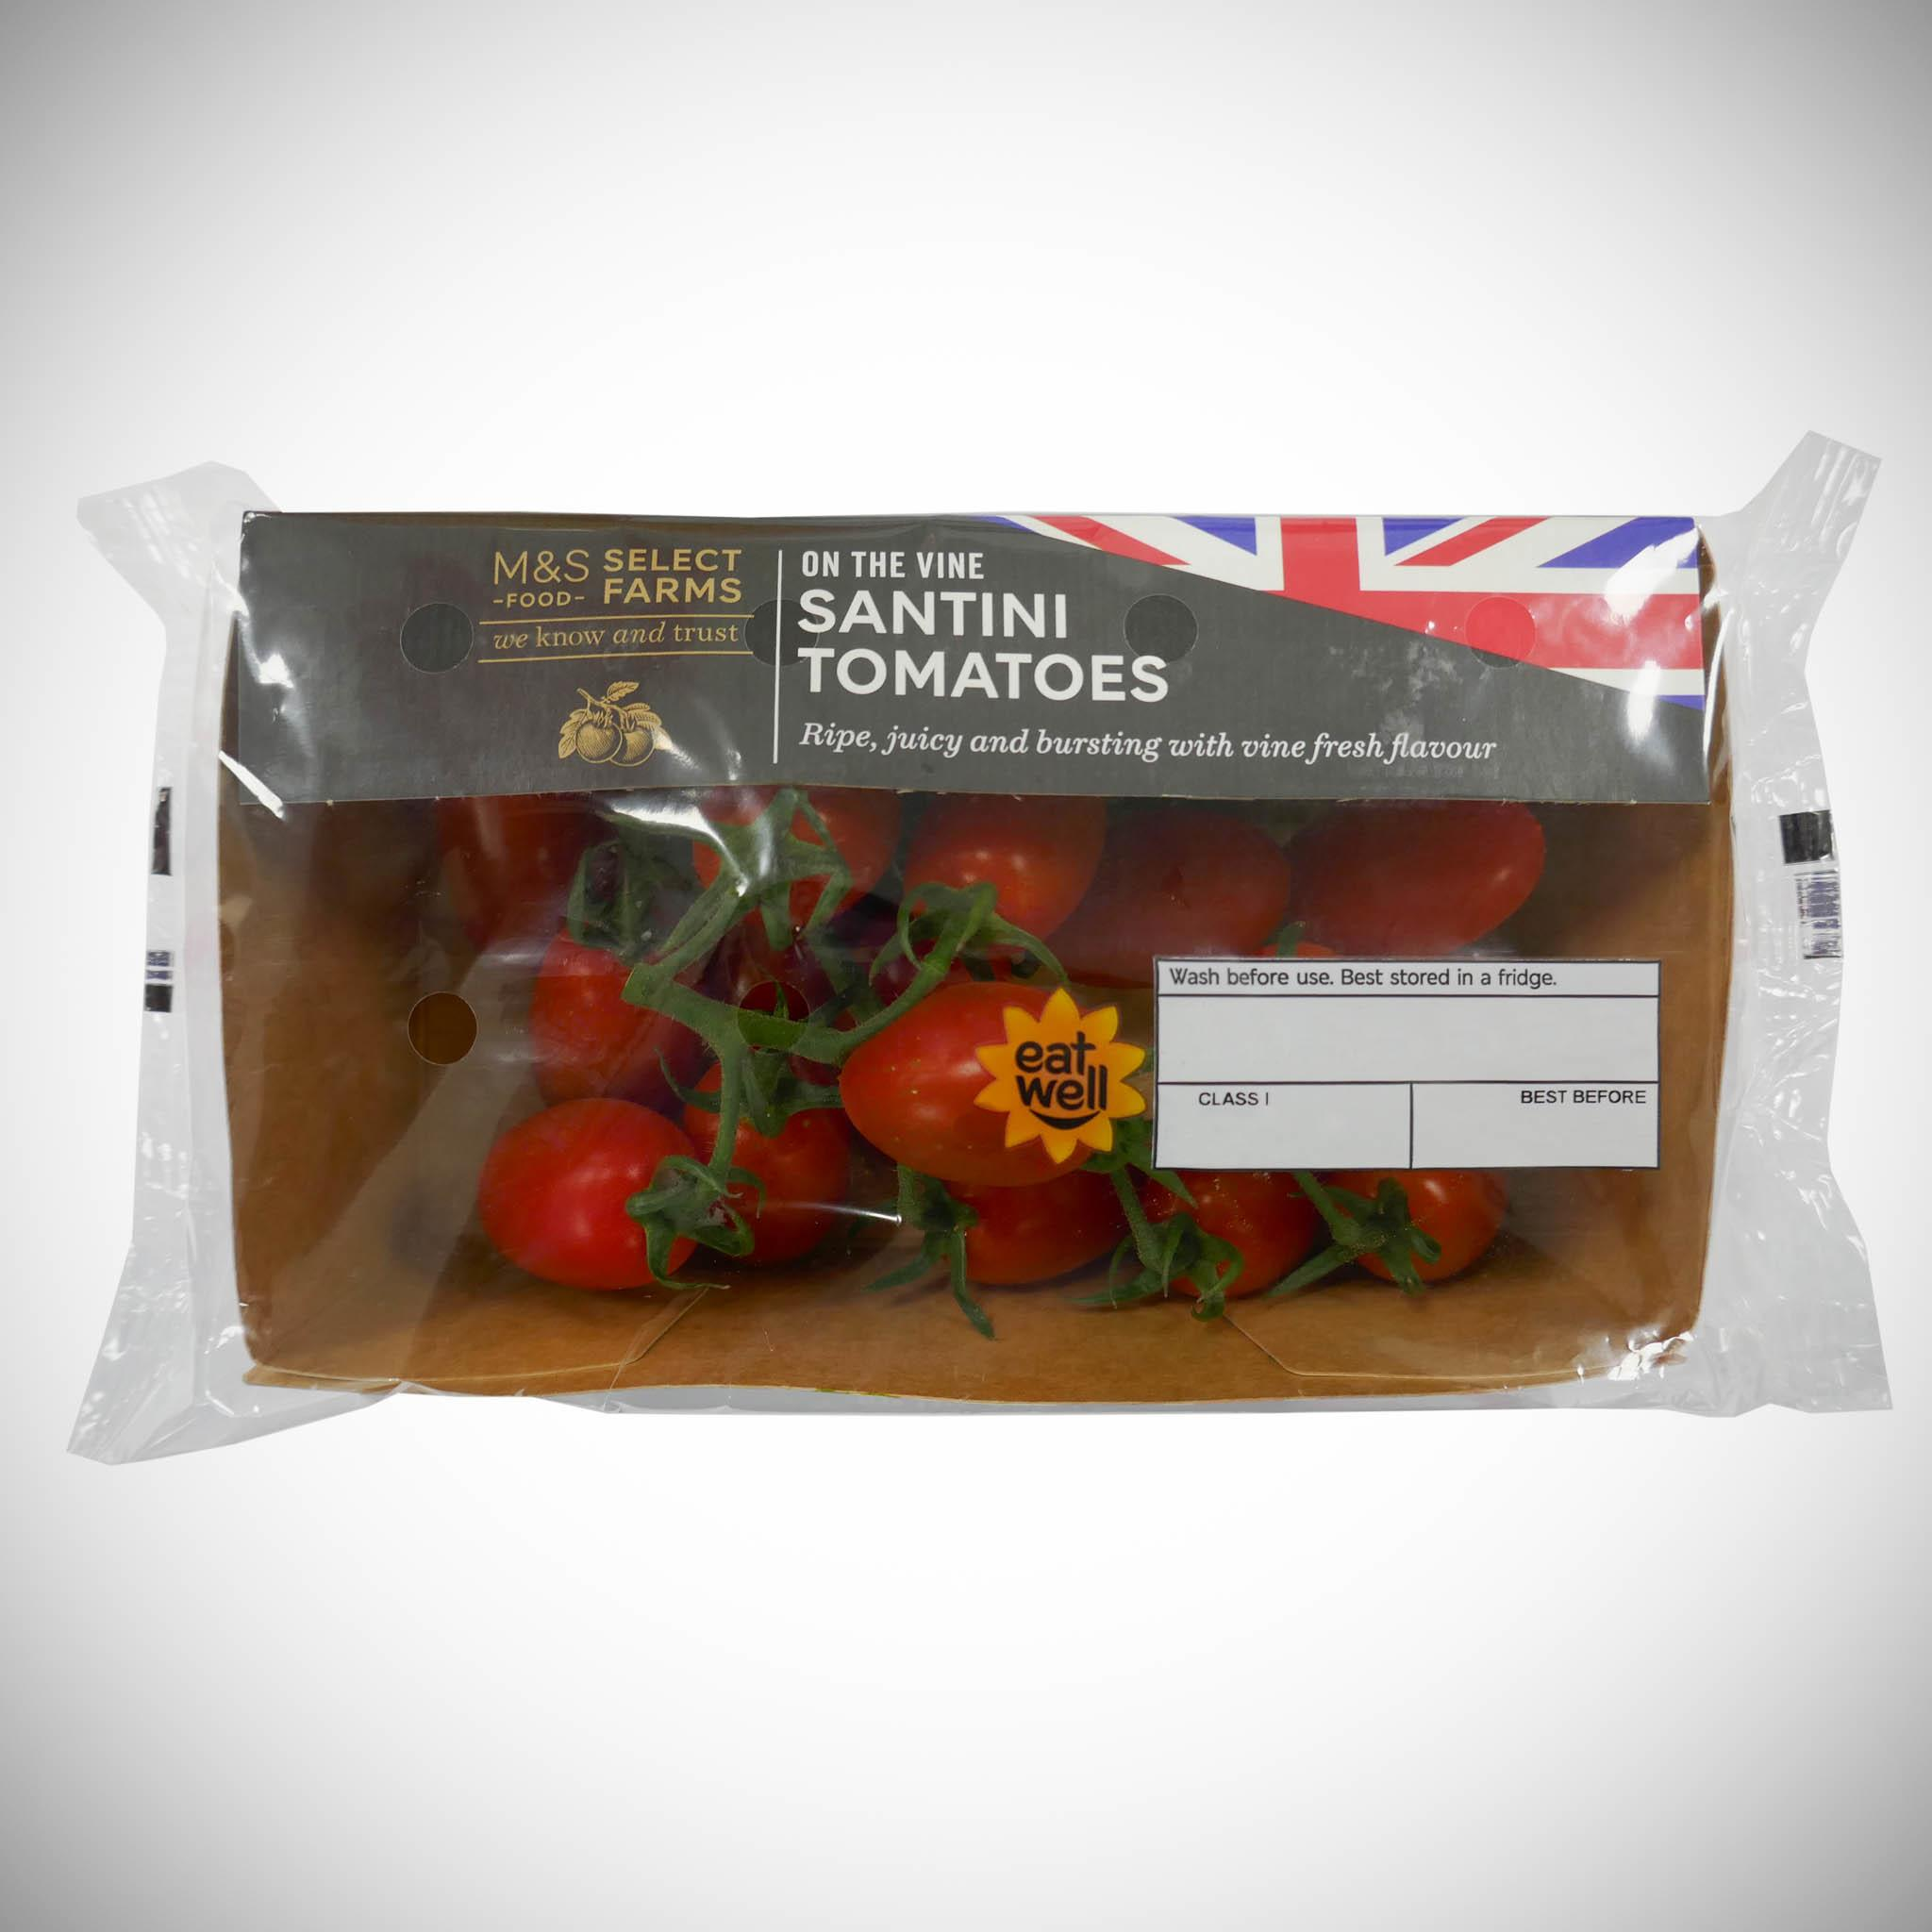 Santini Tomatoes on the Vine 250g